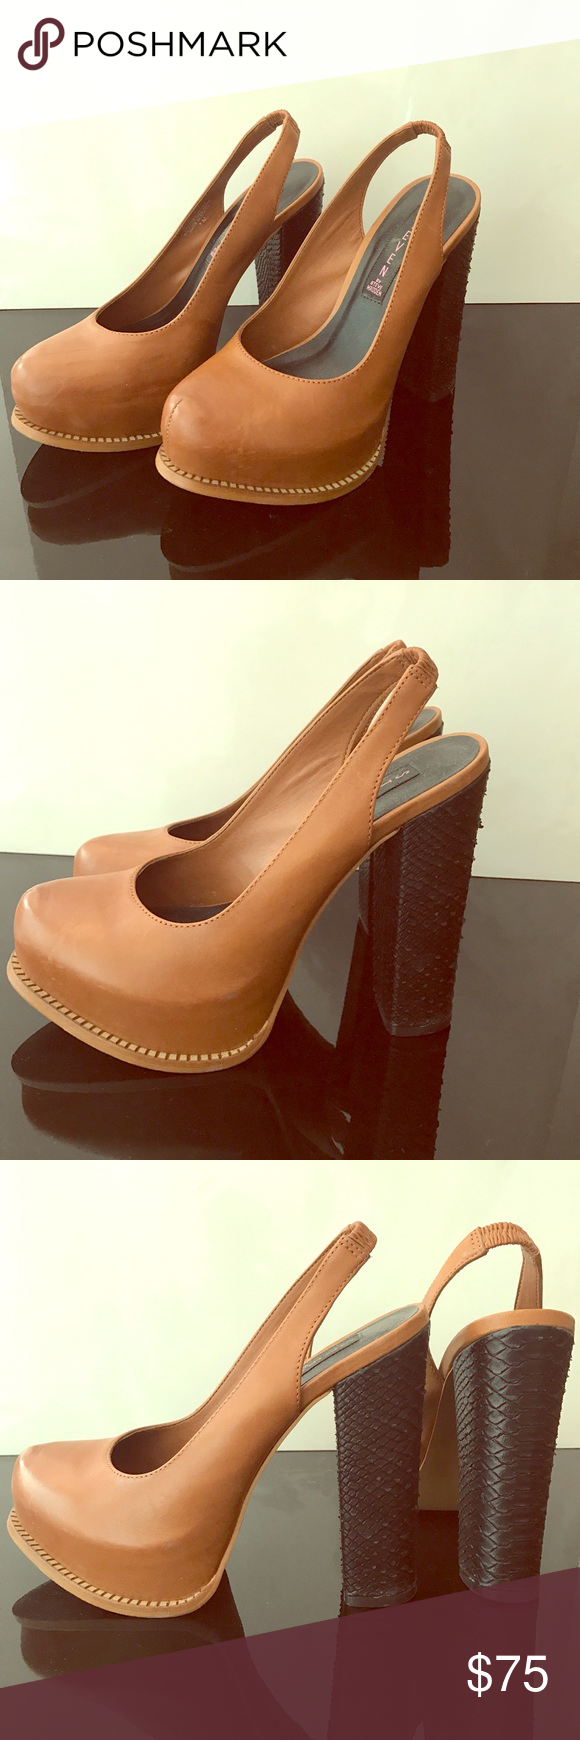 Brown platforms, genuine leather, high heels Genuine leather brown platforms with black textured heels. Excellent condition, only worn once. Steven by Steve Madden Shoes Platforms